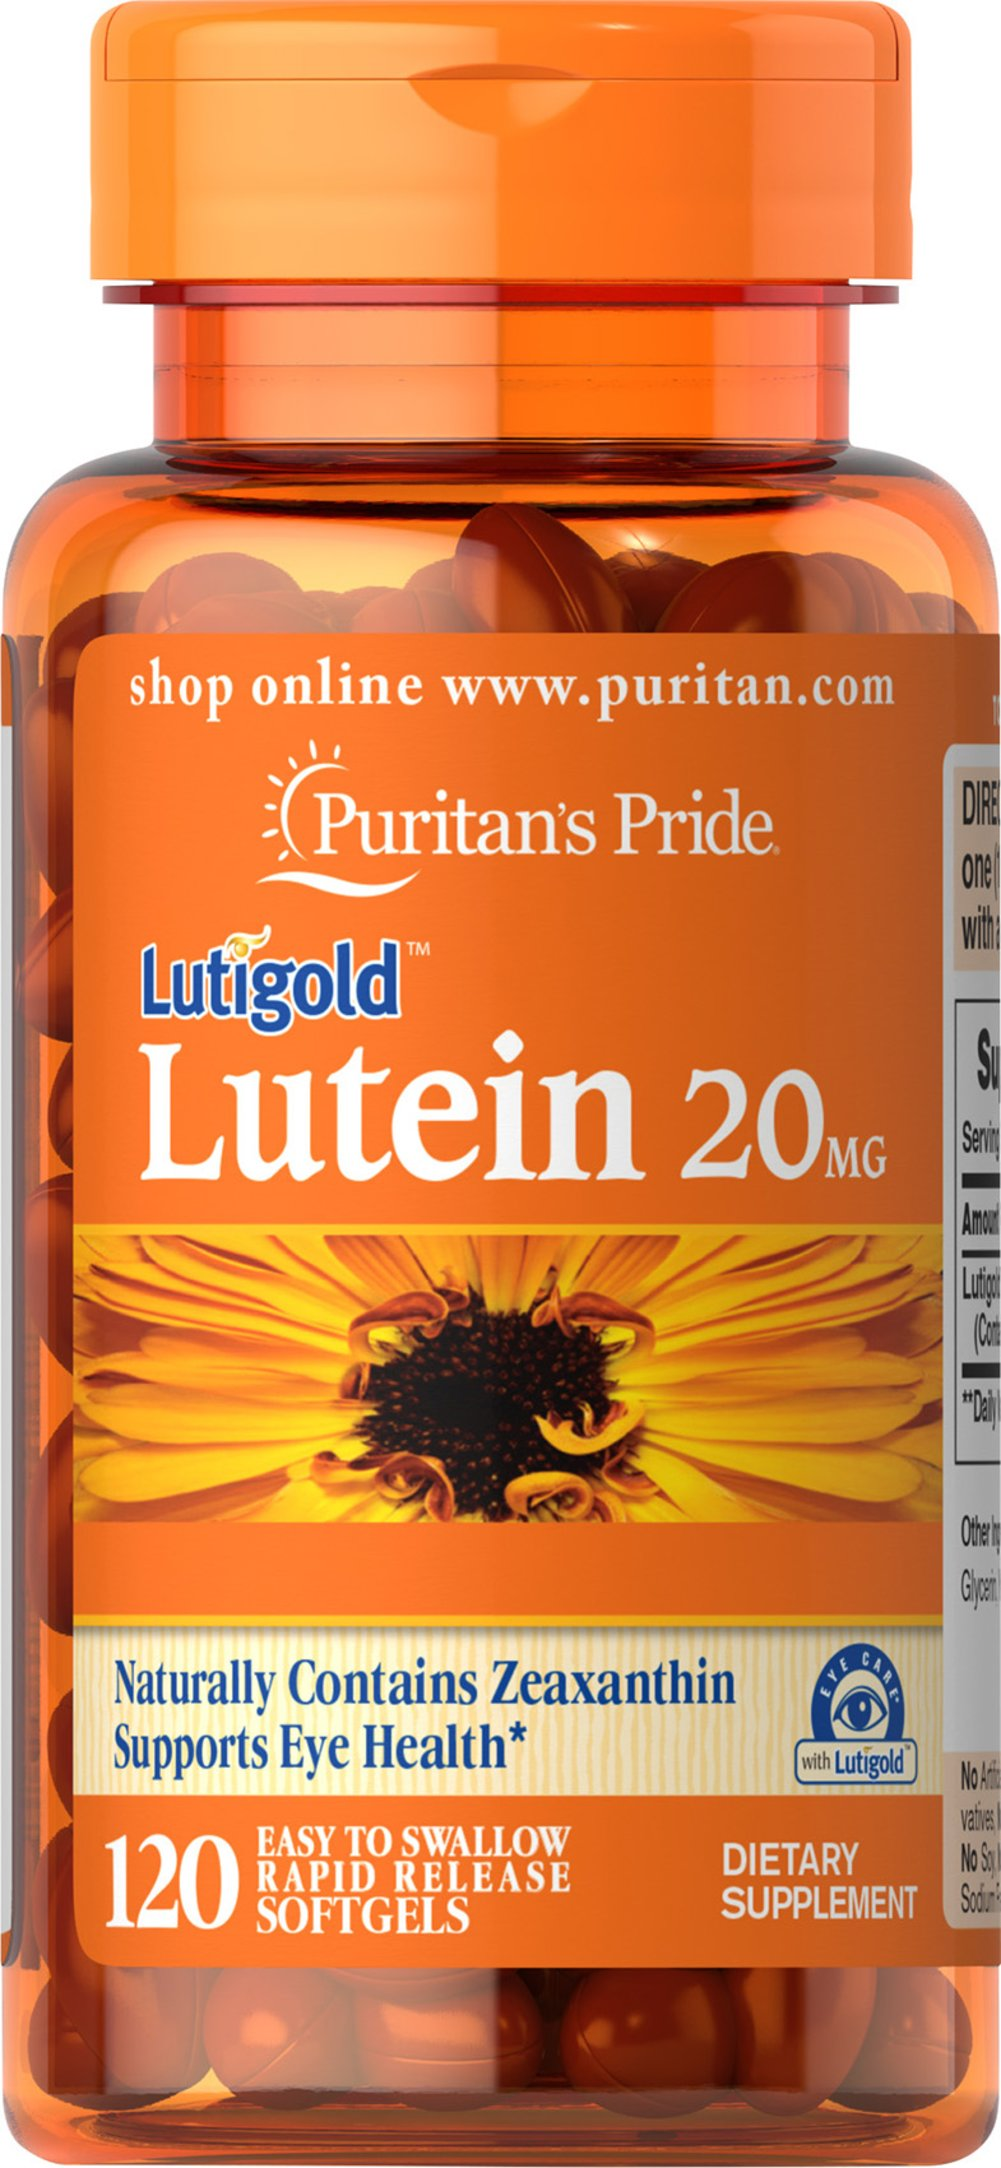 Lutein 20 mg with Zeaxanthin  120 Softgels 20 mg $13.19